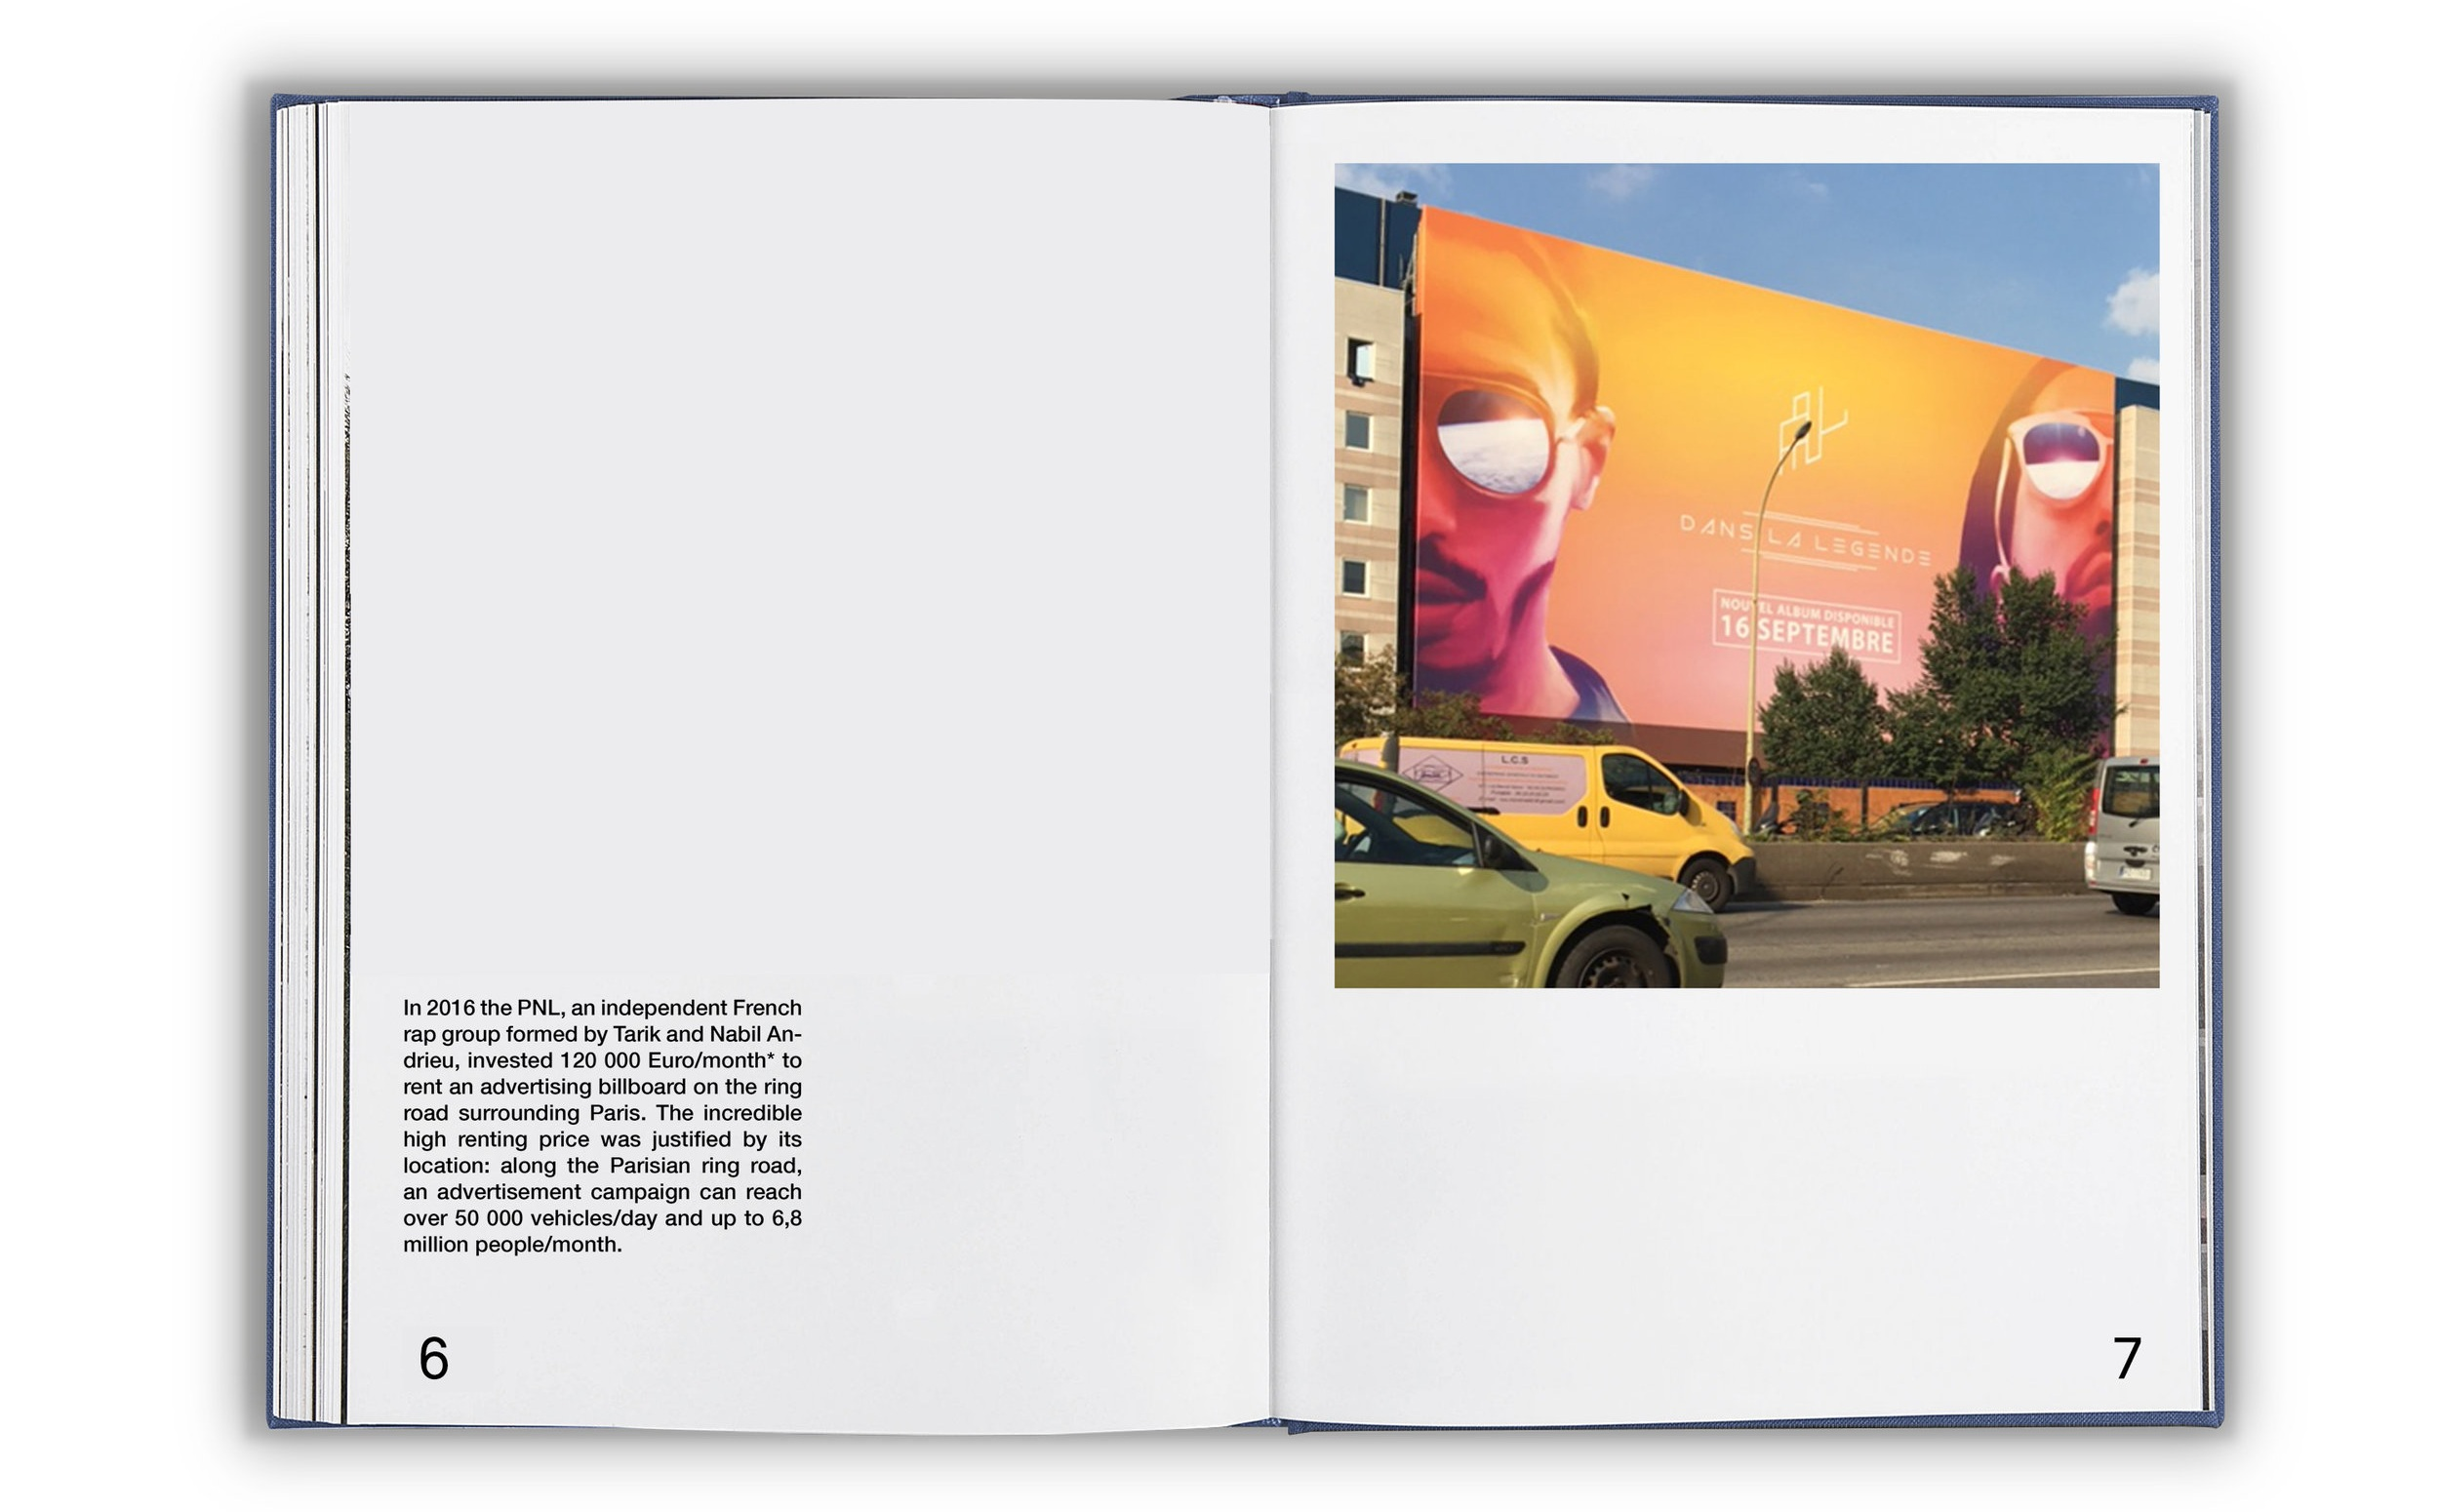 In 2016 the PNL, an independent French rap group formed by Tarik and Nabil Andrieu, invested 120 000 Euro/month to rent a billboard on the ring road surrounding Paris. The location justified the incredibly high rent—an ad campaign could reach over 50,000 vehicles a day and up to 6.8 million people a month.